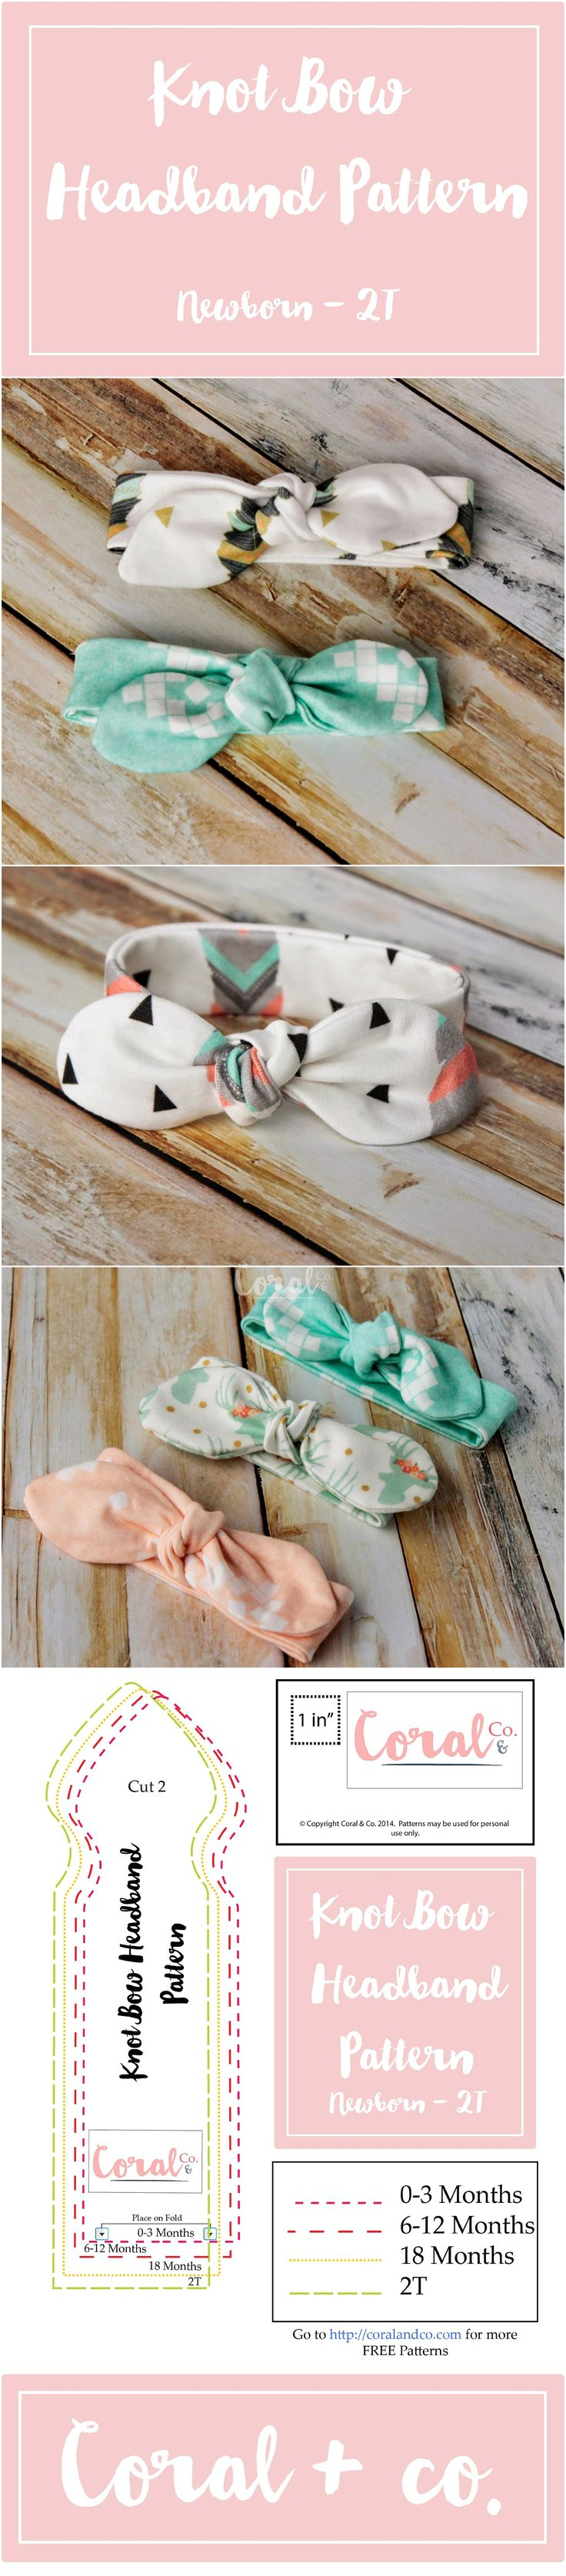 Easy DIY baby headband pattern free sewing – Knot Bow Headband Pattern and Tutorial